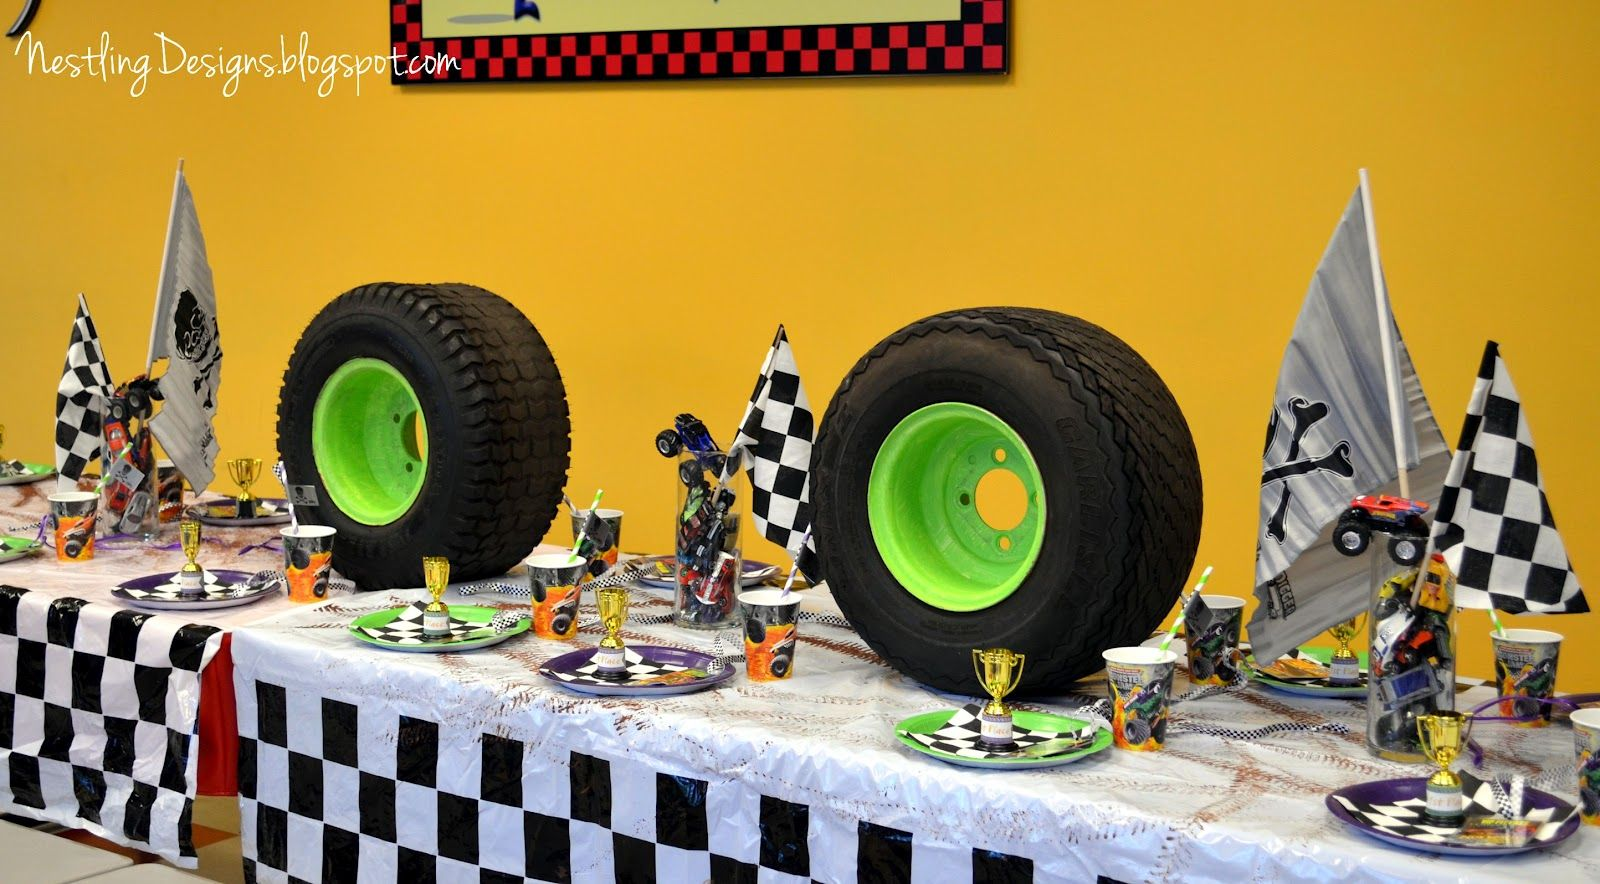 Nestling Search Results For Monster Truck Party